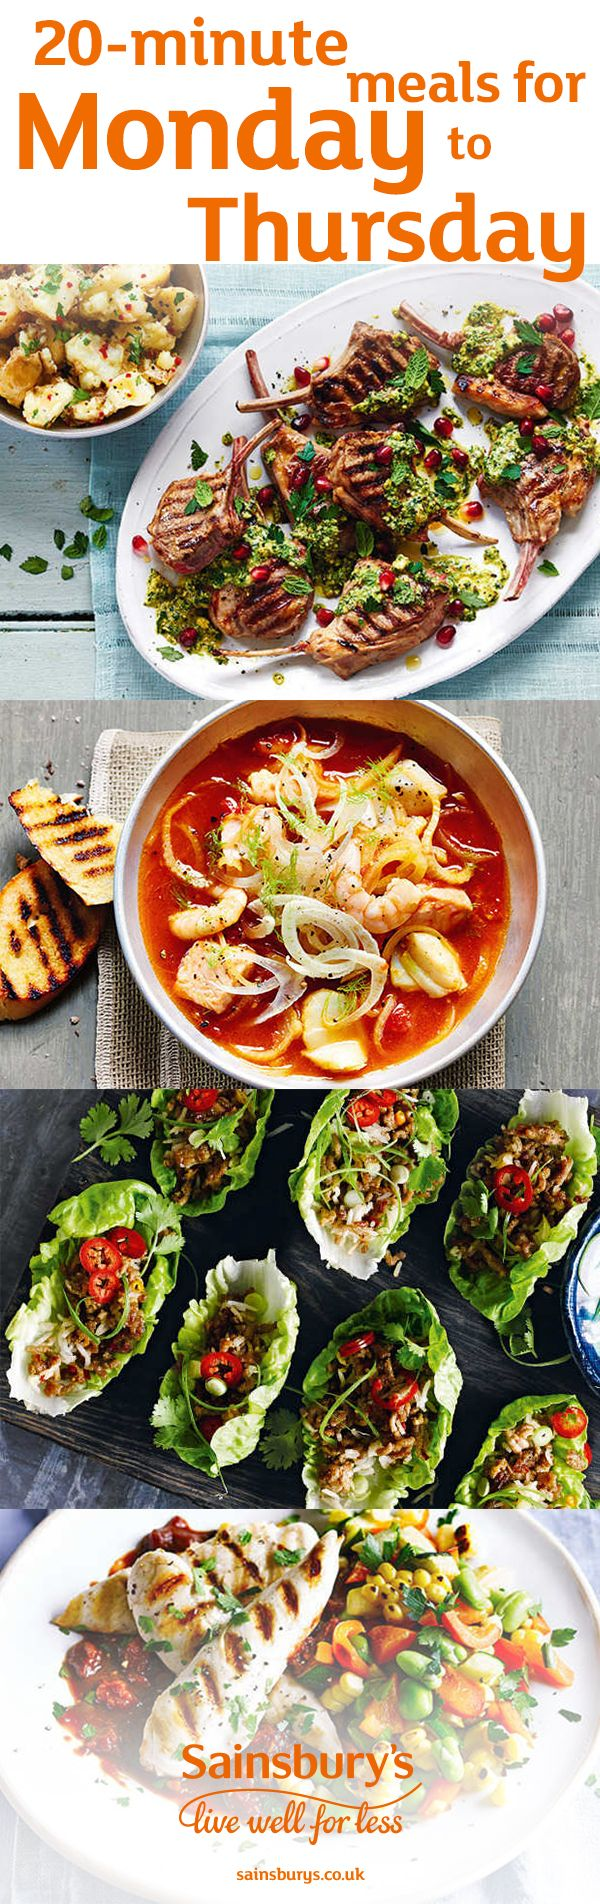 Feeling hungry but no time to cook? Here's how to get a homemade dinner on the table in 20 minutes flat. These healthier mid-week meals include lamb chops with pistachio sauce, quick fish and fennel stew with garlic toast, smoky southern-style chicken with succotash and spicy pork larb salad.